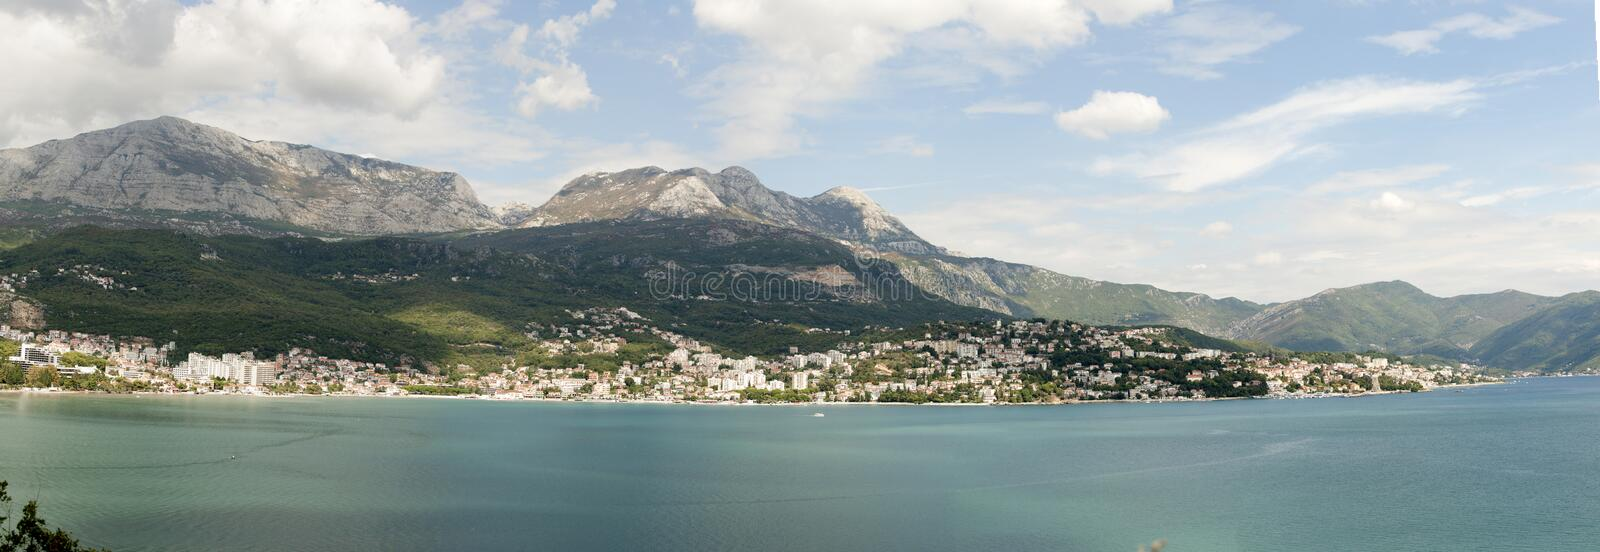 Boka Kotorska bay. Photo of Boka Kotorska bay herceg novi stock photo